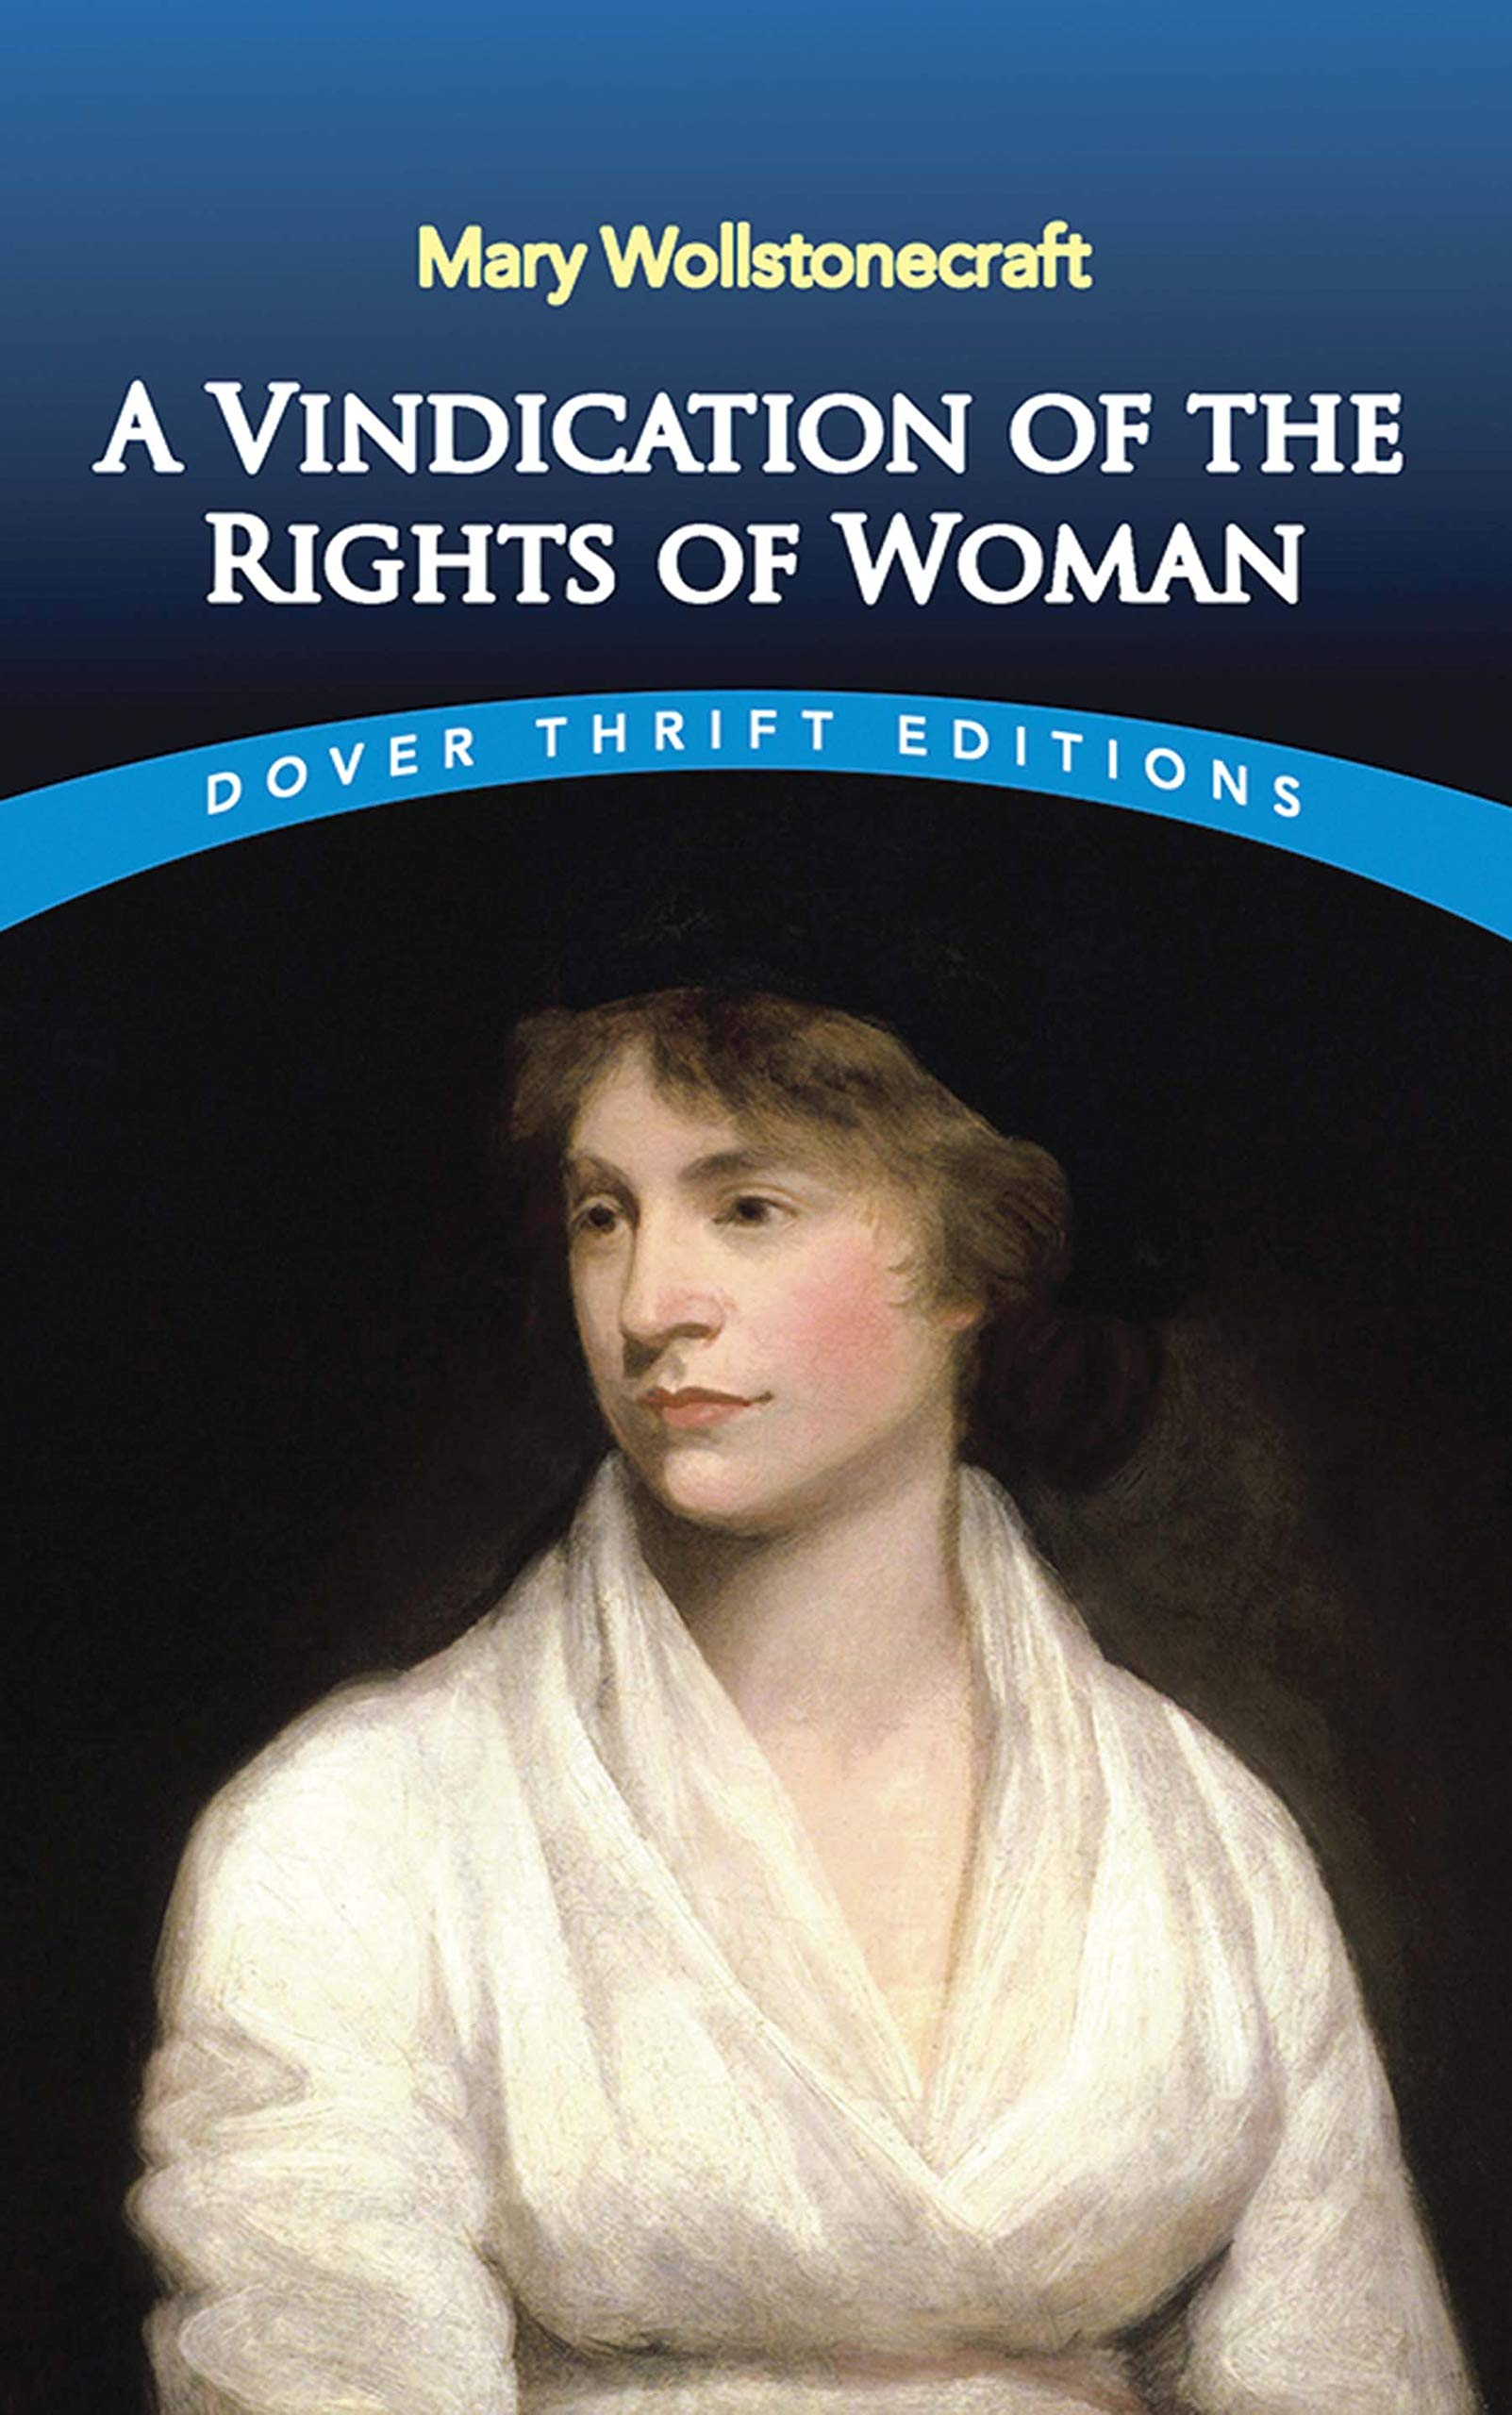 A Vindication of the Rights of Woman By Mary Wollstonecraft PDF